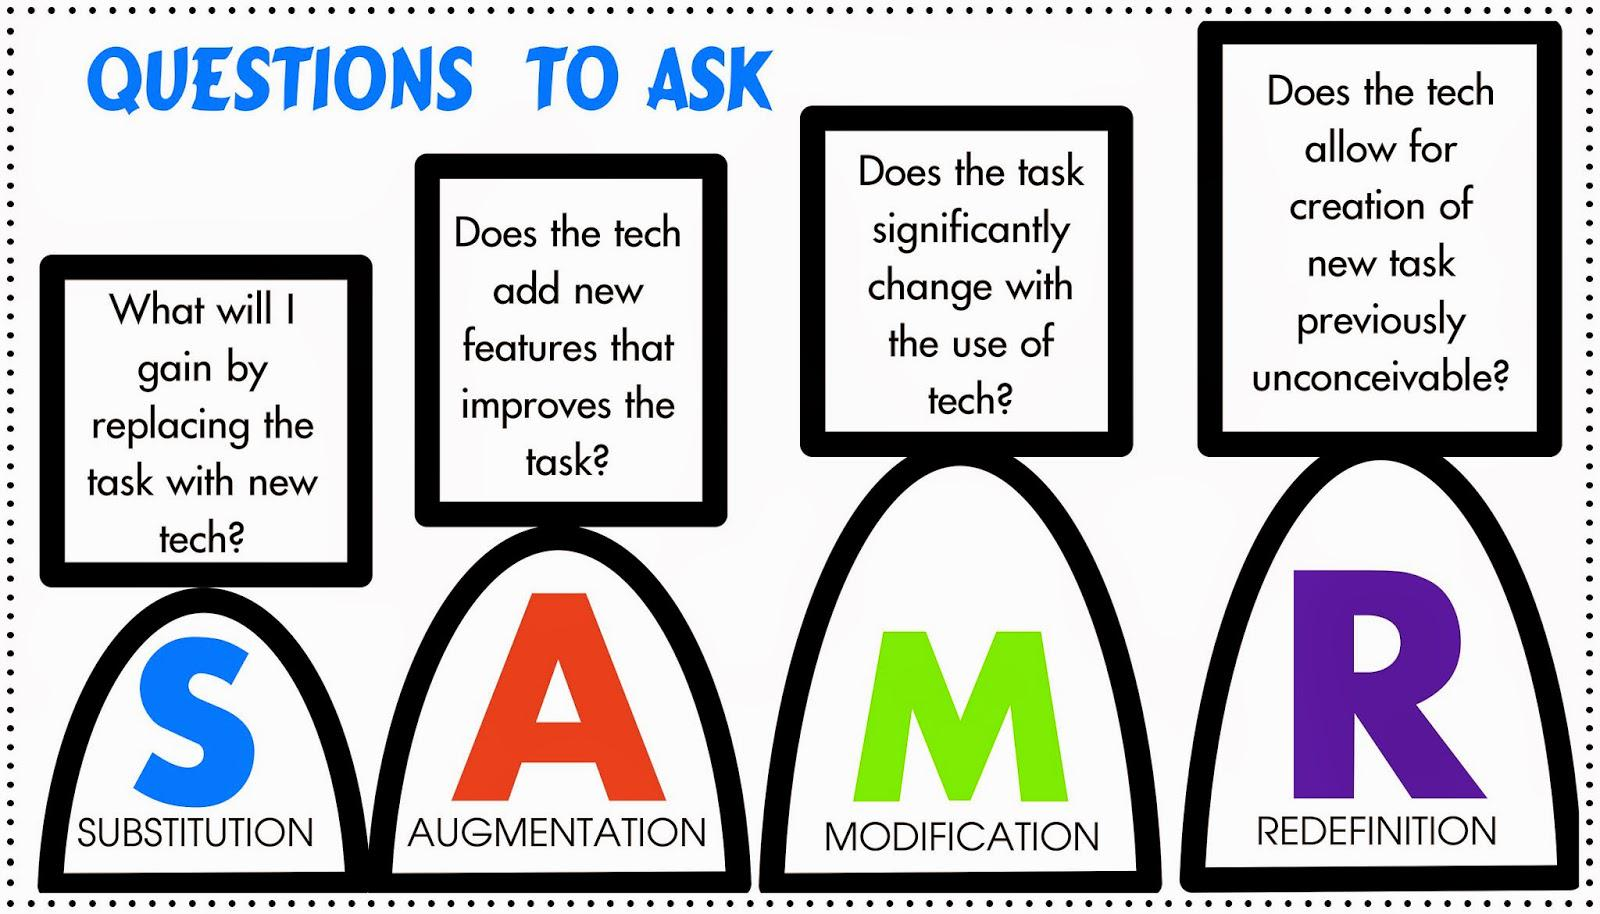 RT @Makerspaces_com: The tools for teaching are changing & thats good.  We need to evolve. When adding #edtech, ask these questions. #samr http://t.co/hYYhOY7ccy